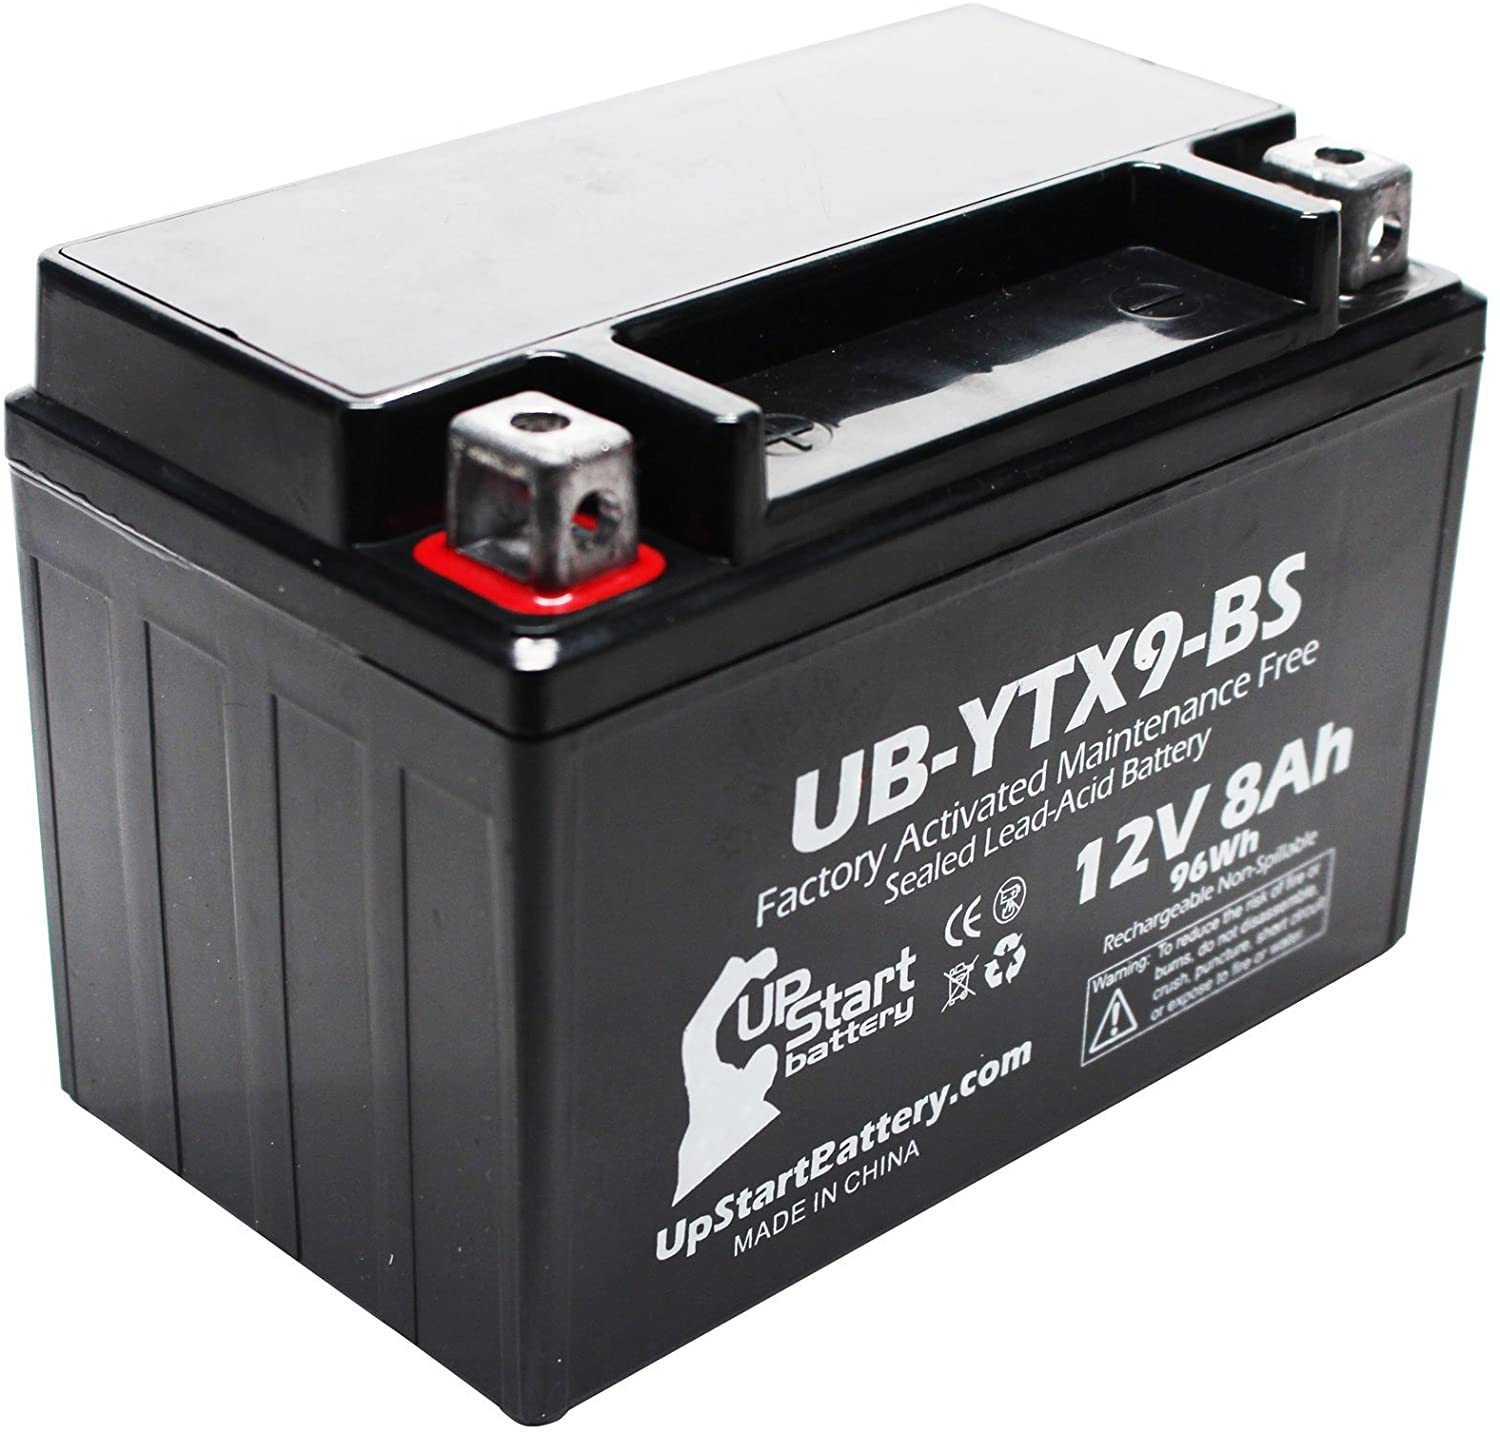 Replacement for 2006 Polaris Predator 500 500CC Factory Activated, Maintenance Free, ATV Battery - 12V, 8Ah, UB-YTX9-BS